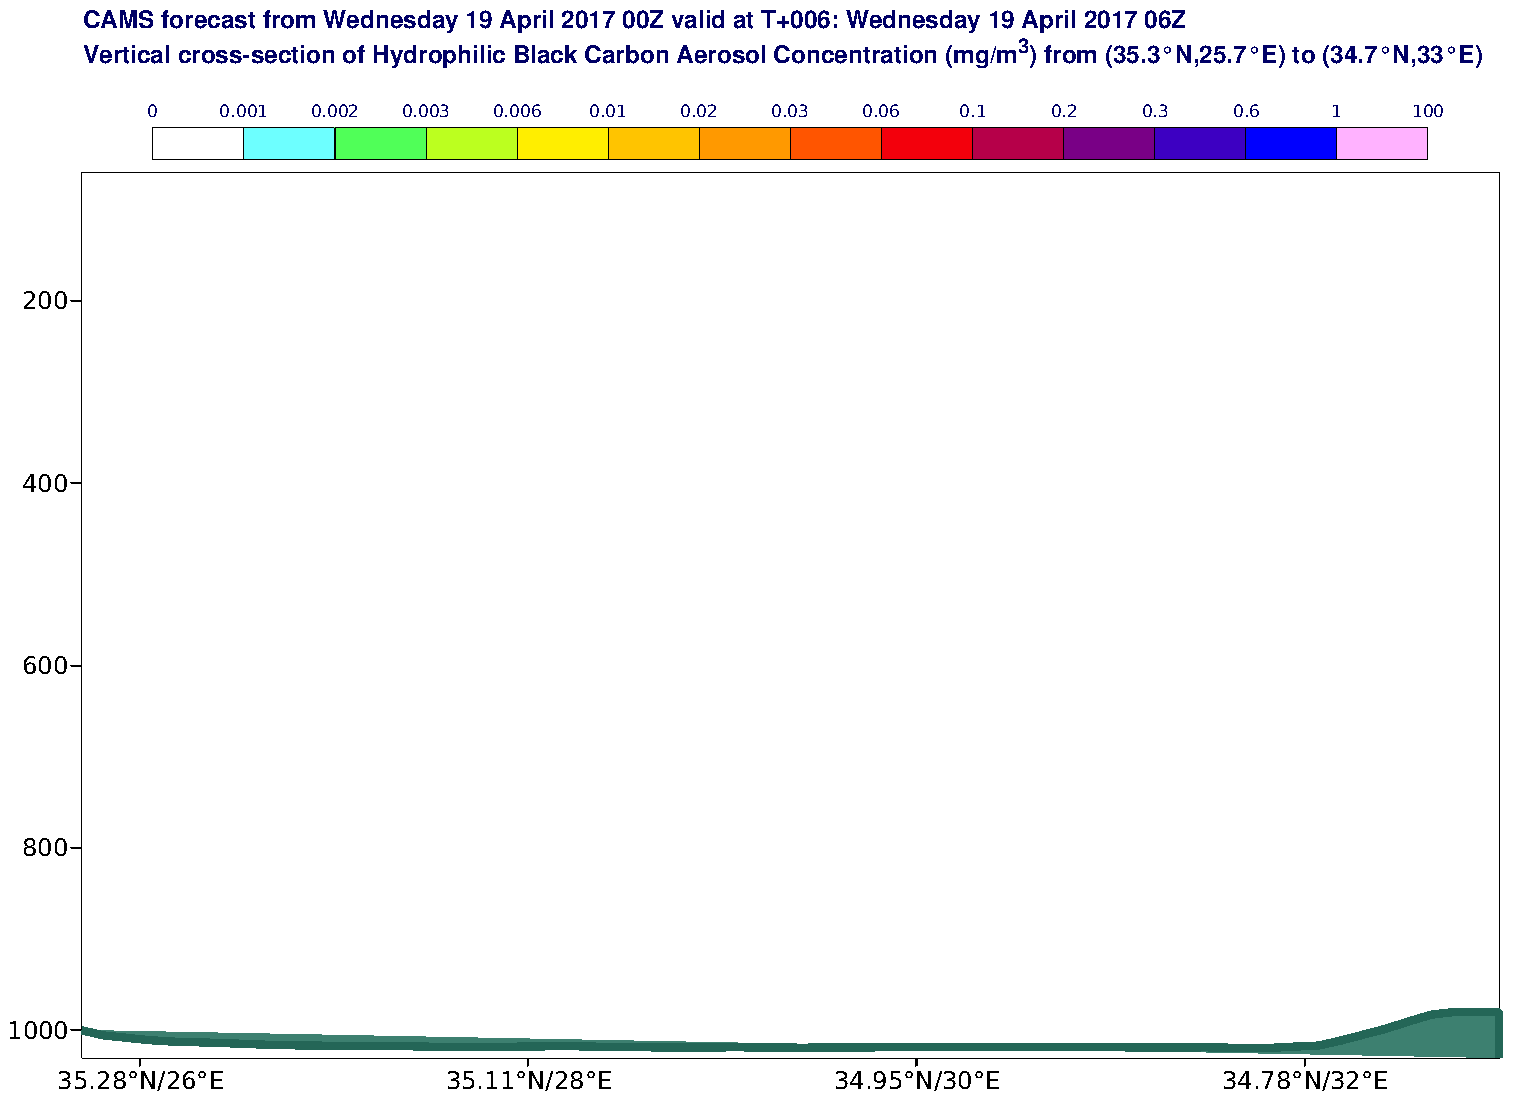 Vertical cross-section of Hydrophilic Black Carbon Aerosol Concentration (mg/m3) valid at T6 - 2017-04-19 06:00